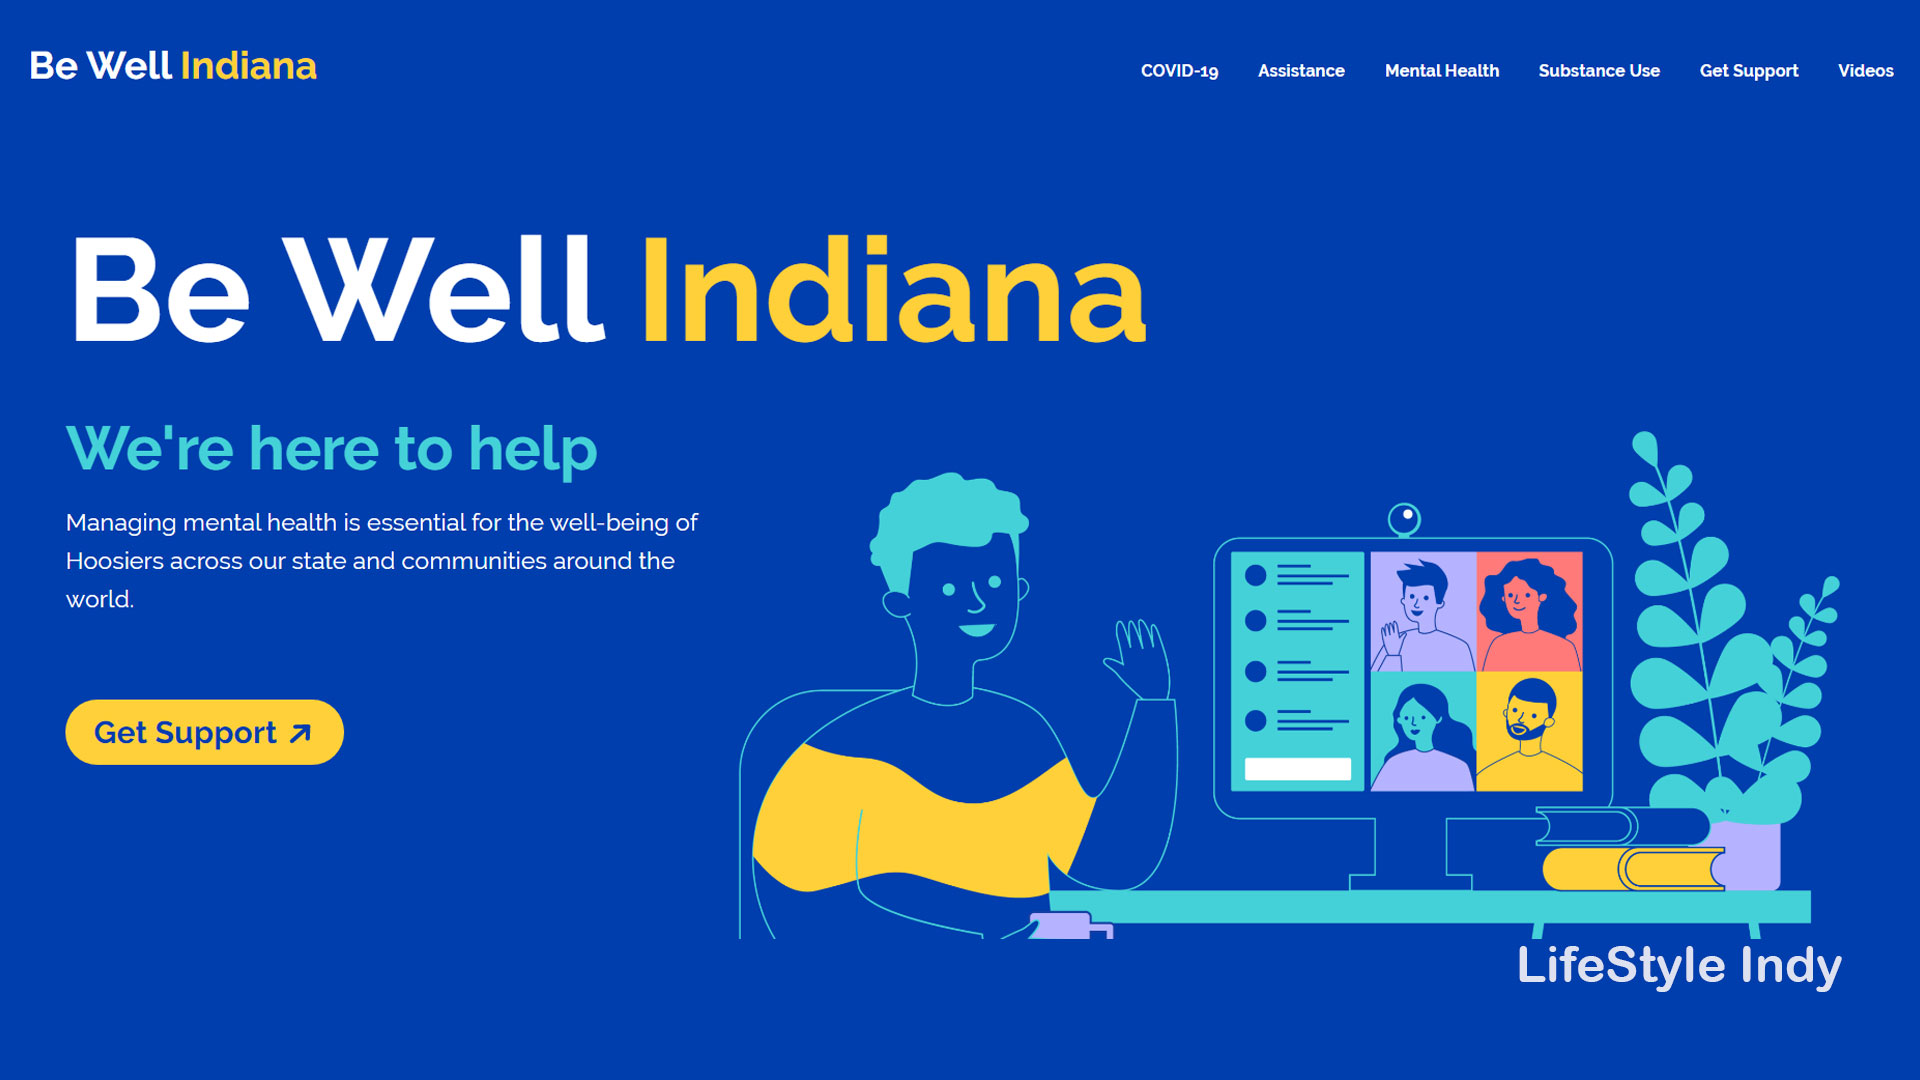 Be Well Indiana